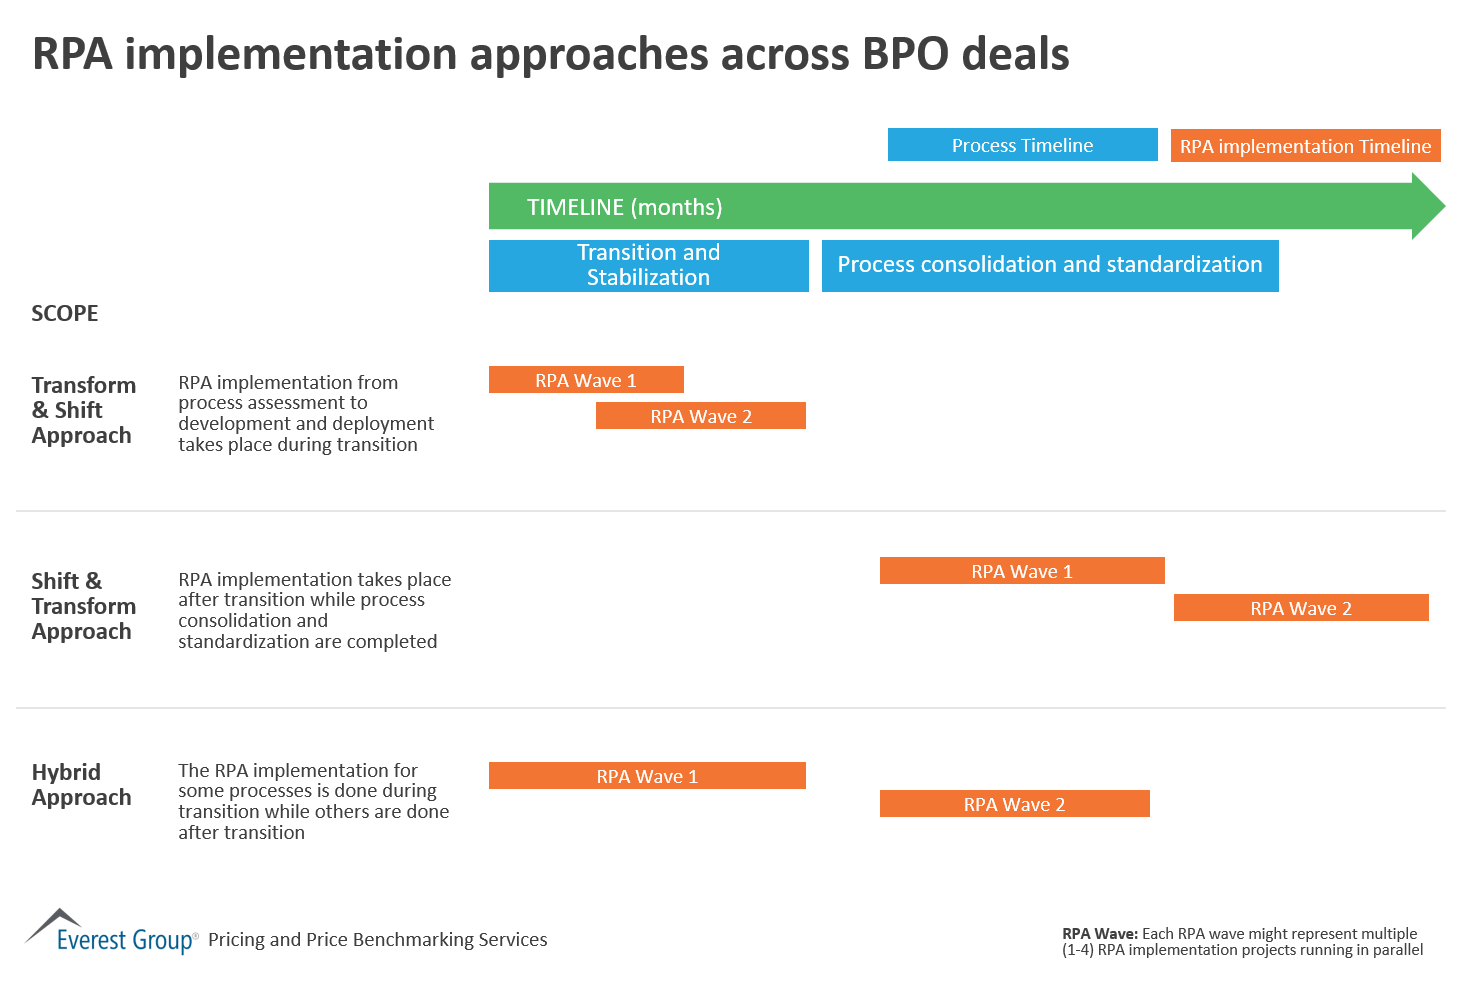 RPA implementation approaches across BPO deals